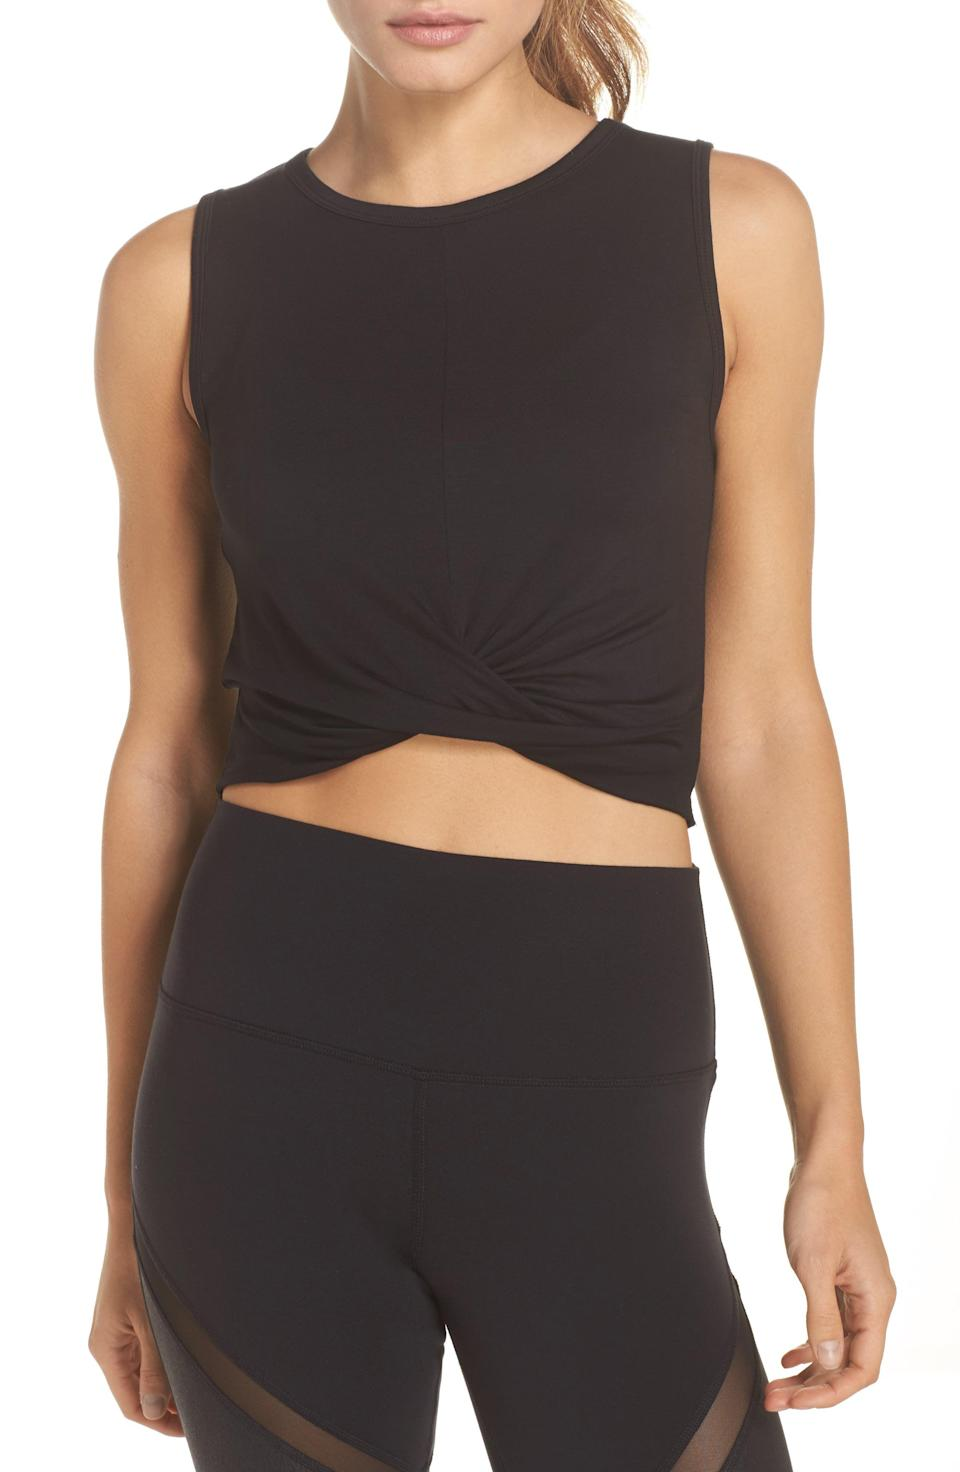 """<p><strong>ALO</strong></p><p>nordstrom.com</p><p><strong>$54.00</strong></p><p><a href=""""https://go.redirectingat.com?id=74968X1596630&url=https%3A%2F%2Fwww.nordstrom.com%2Fs%2Falo-cover-tank%2F4858336&sref=https%3A%2F%2Fwww.prevention.com%2Ffitness%2Fworkout-clothes-gear%2Fg37542513%2Fworkout-tops-for-women%2F"""" rel=""""nofollow noopener"""" target=""""_blank"""" data-ylk=""""slk:Shop Now"""" class=""""link rapid-noclick-resp"""">Shop Now</a></p><p>Stand out from the gym crowd in this bright faux wrap tank. It <strong>features a fitted silhouette that hits at the waist, a soft draped jersey fabric, and a raw edge hem</strong>. """"The material is nice, the color is pretty, the style is very flattering, and it fits perfect,"""" wrote one Nordstrom shopper.</p>"""